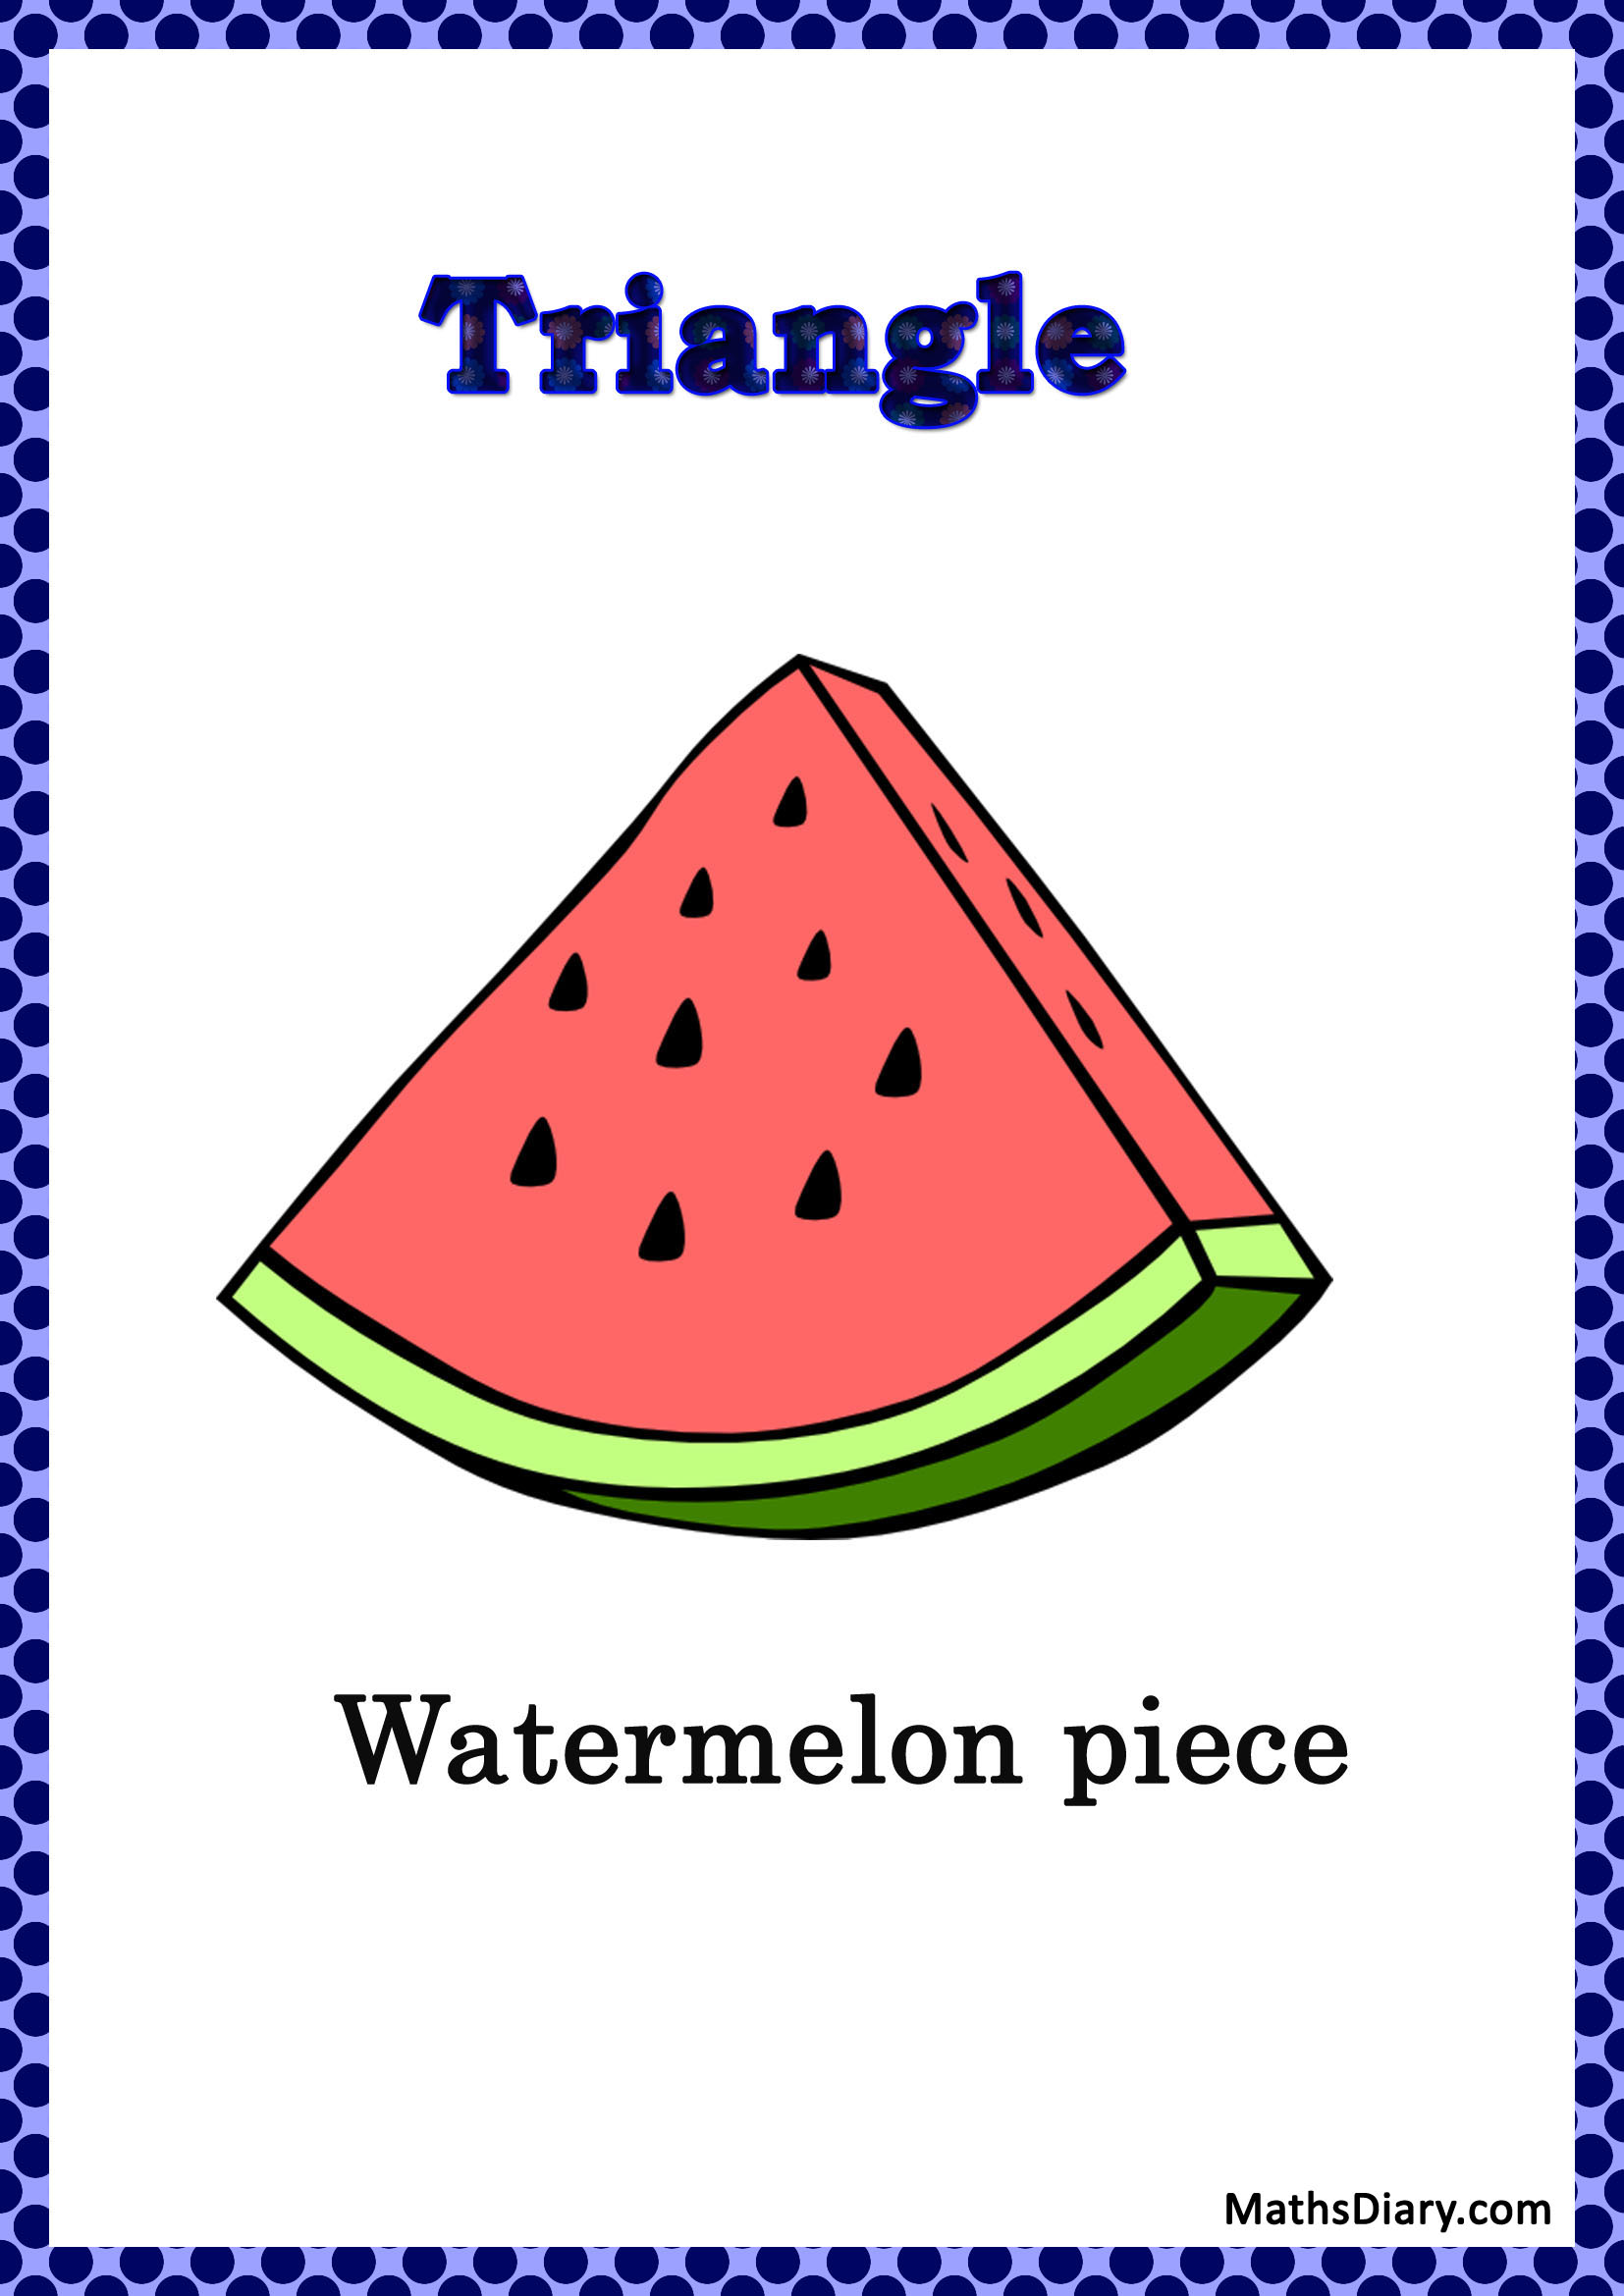 Watermelon Seed Worksheet Pictures To Pin